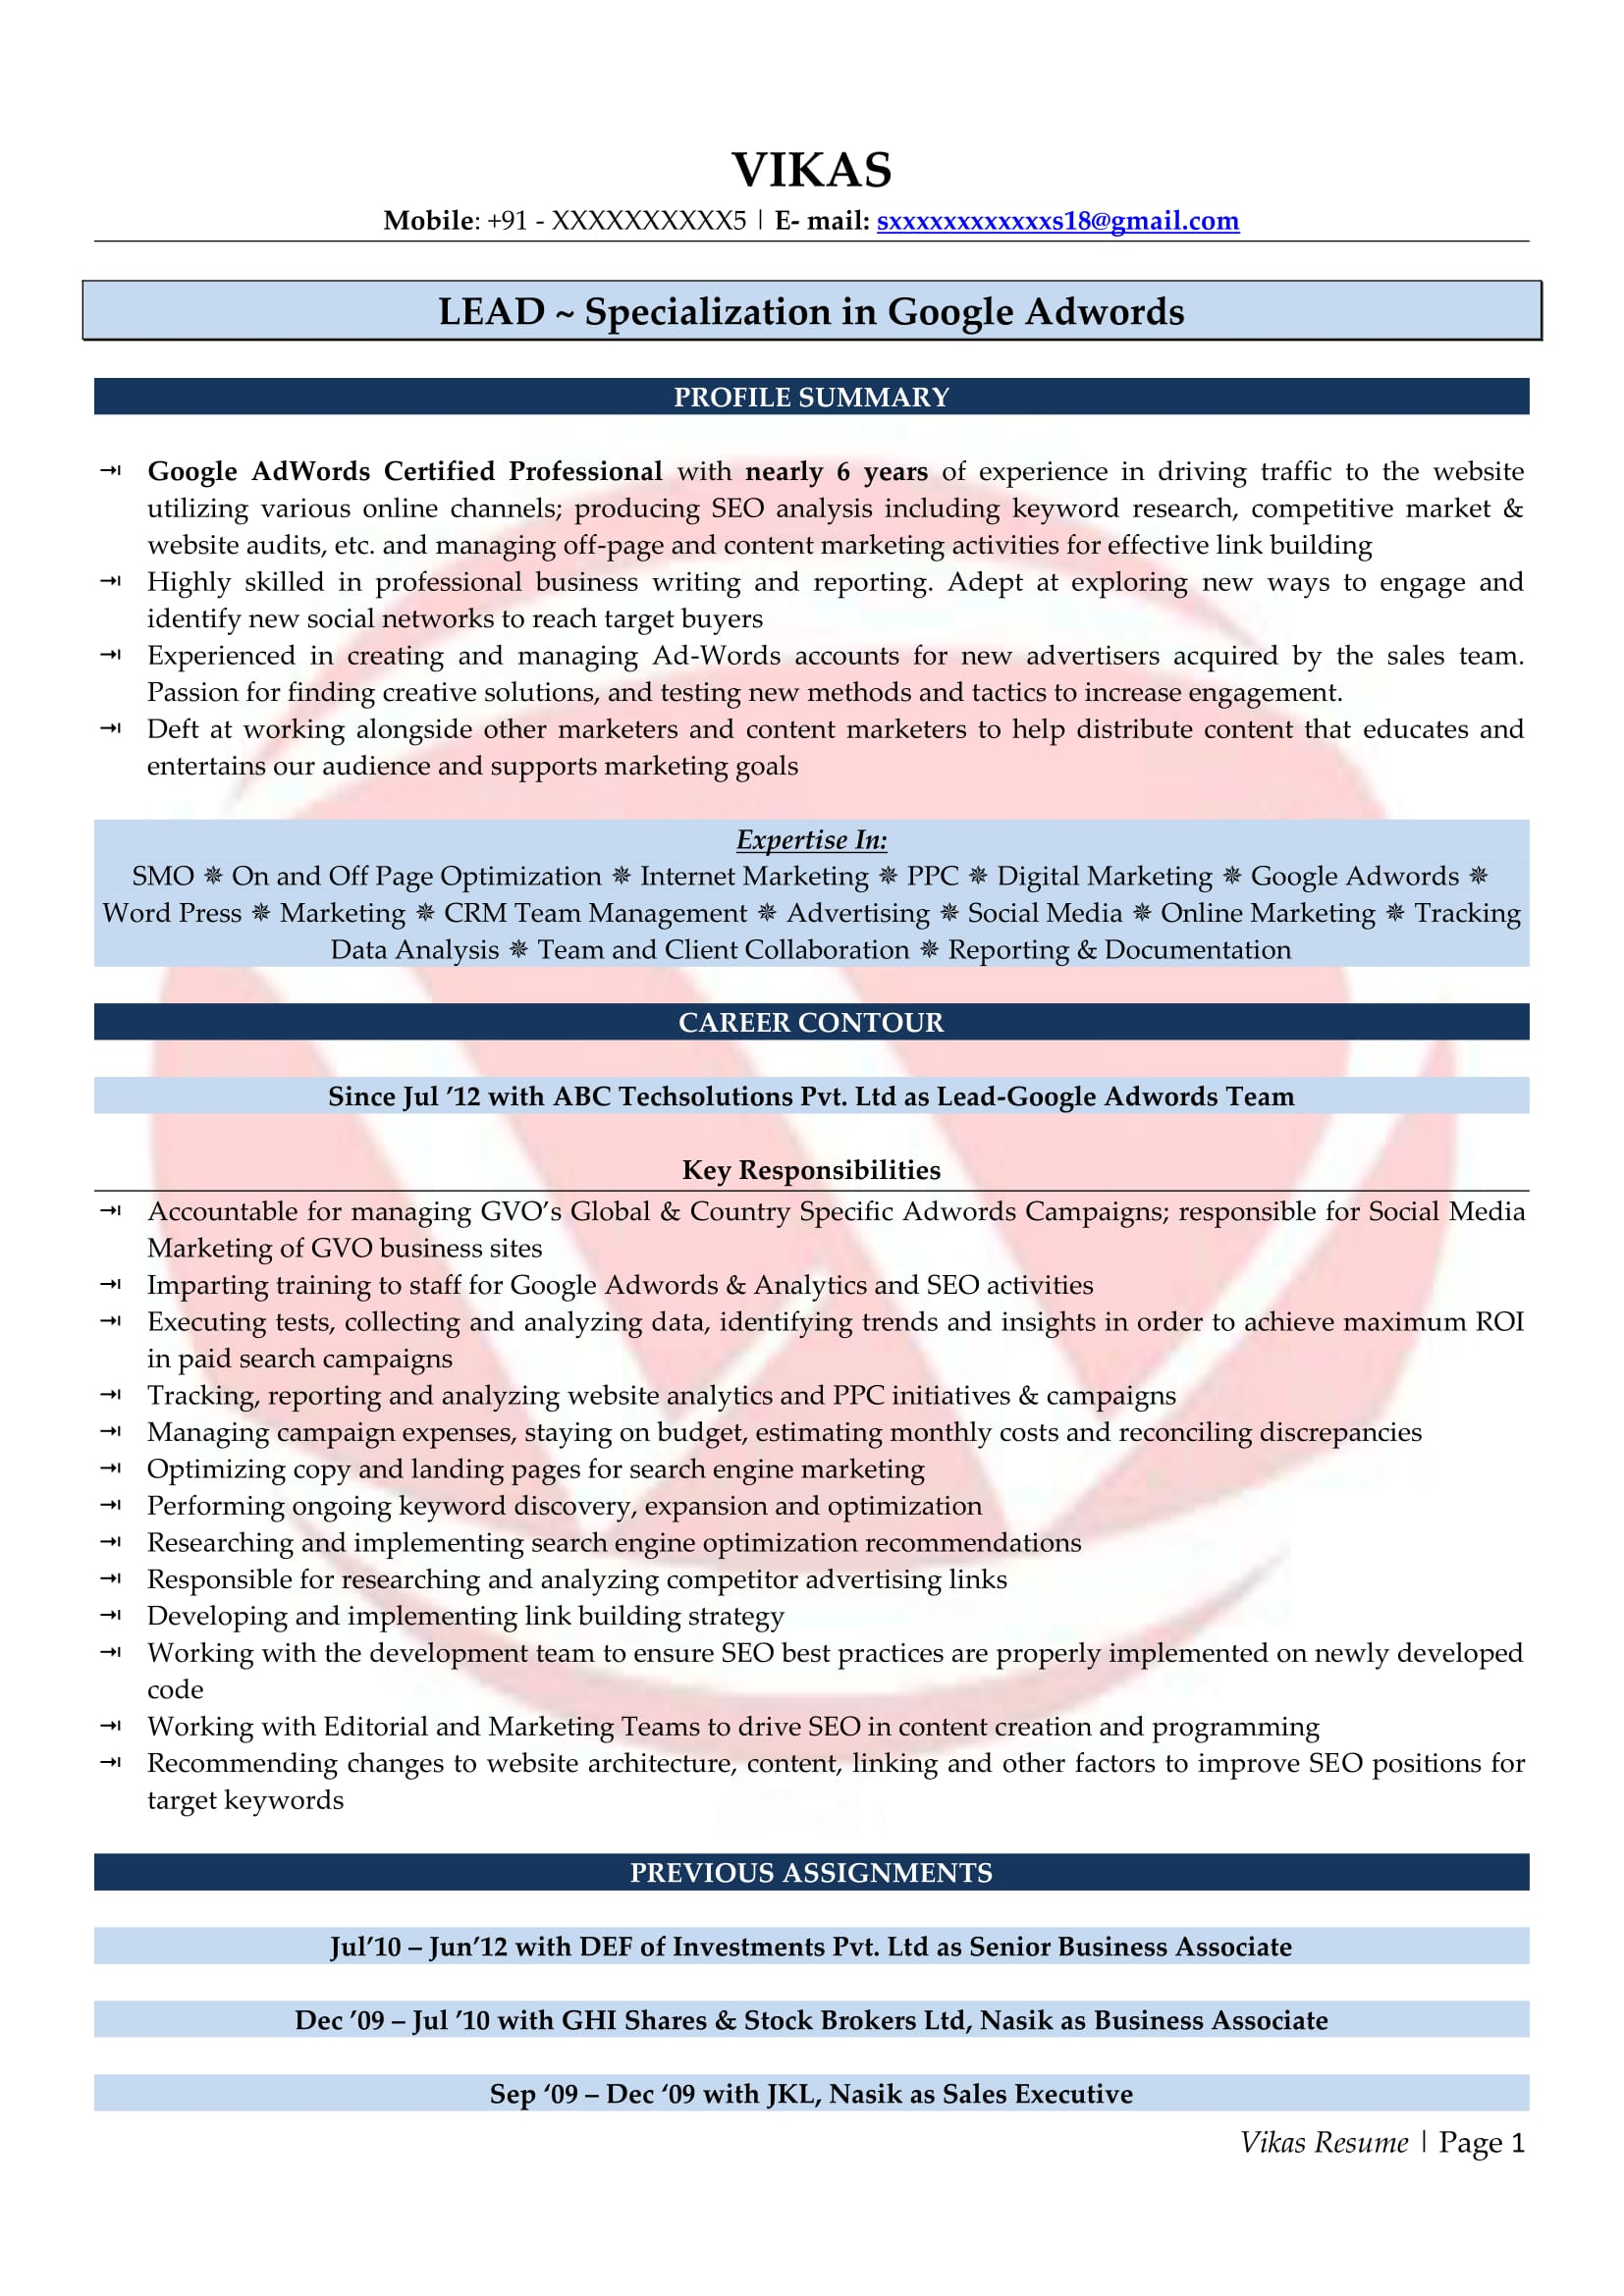 seo sample resumes resume format templates google adwords font size different objectives Resume Google Adwords Sample Resume